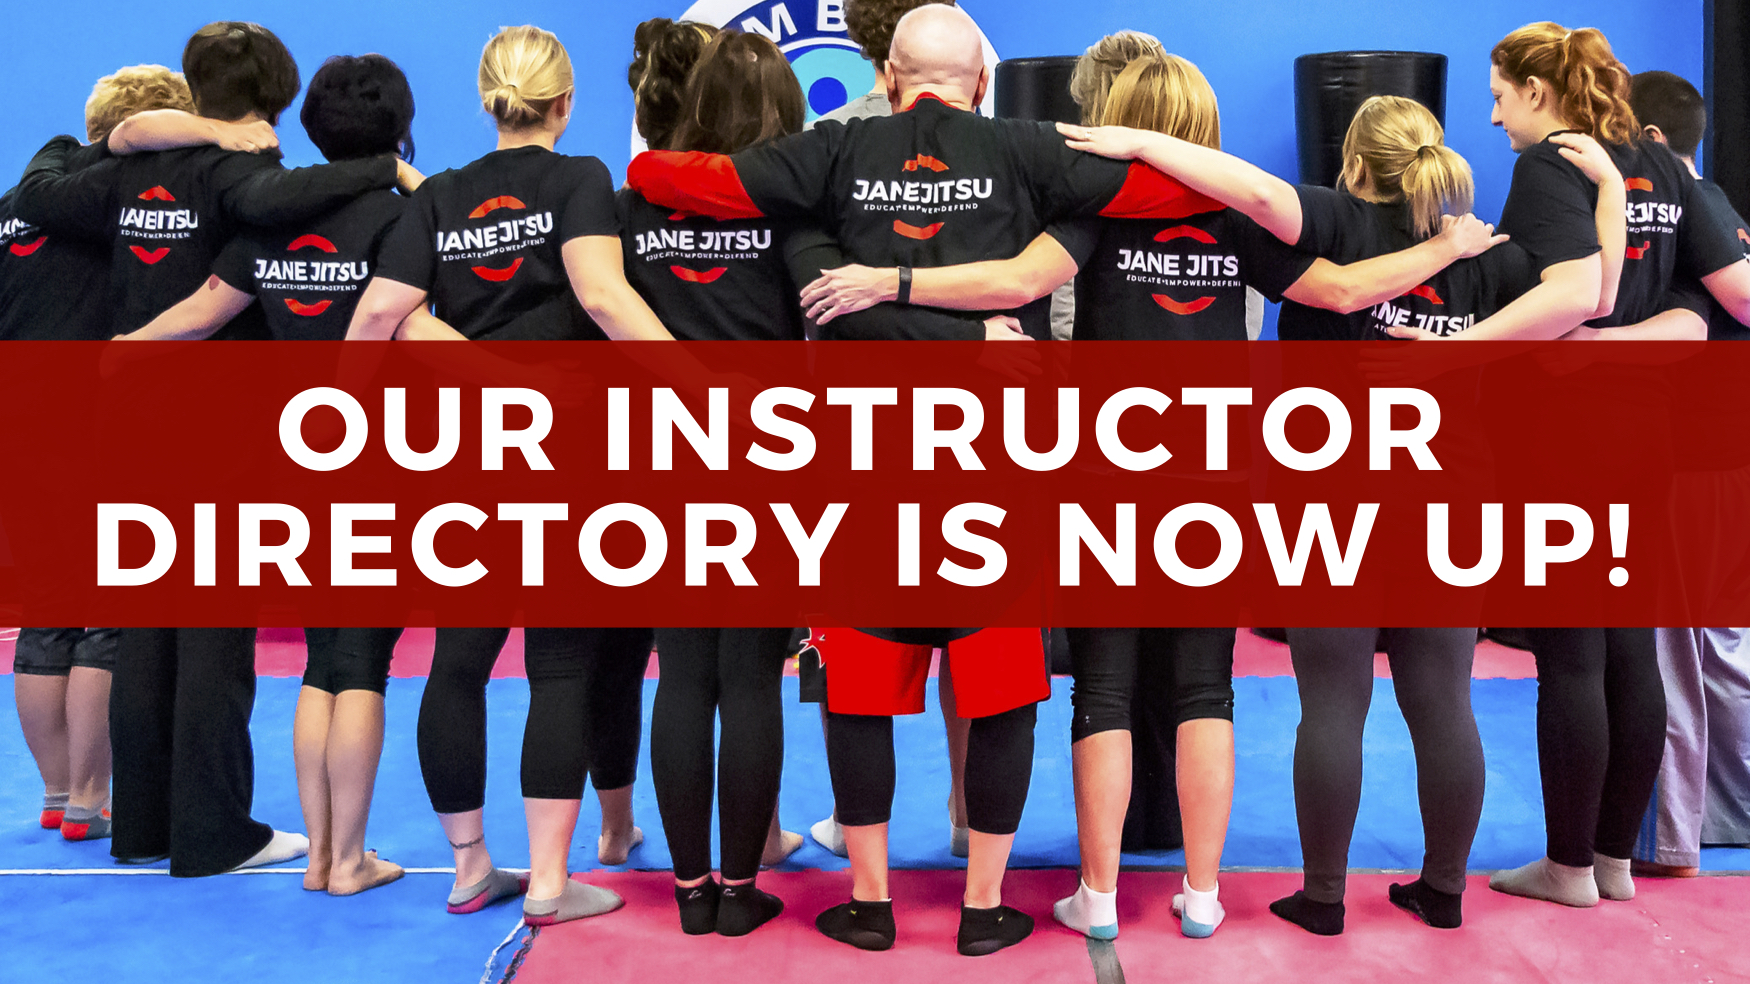 Our Instructor Directory Is Now Up!.jpg